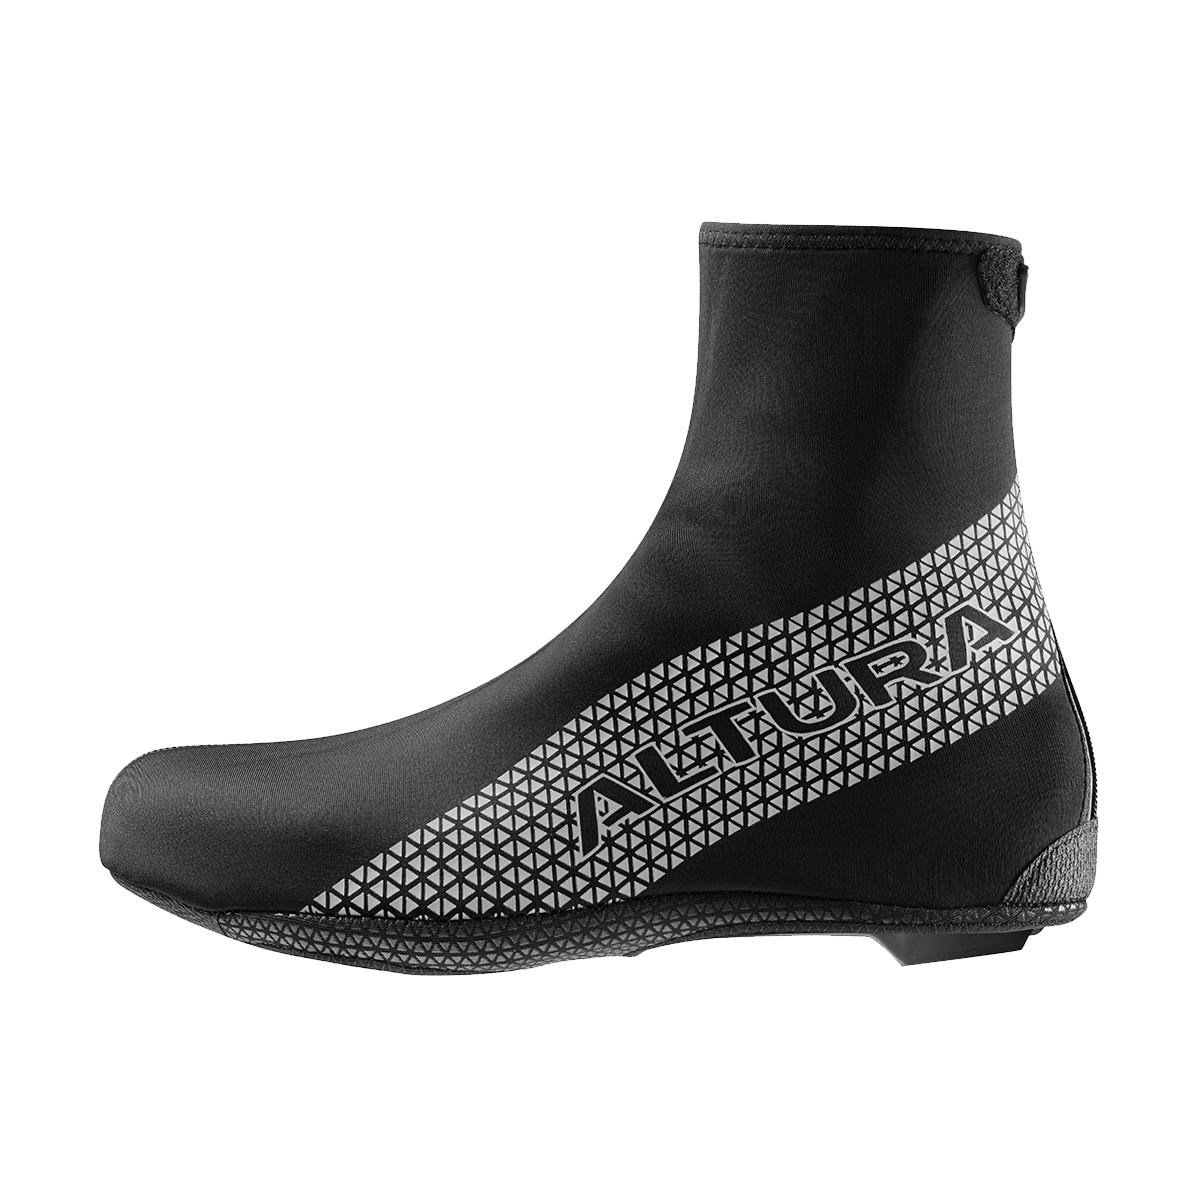 Thermostretch 3 Overshoe